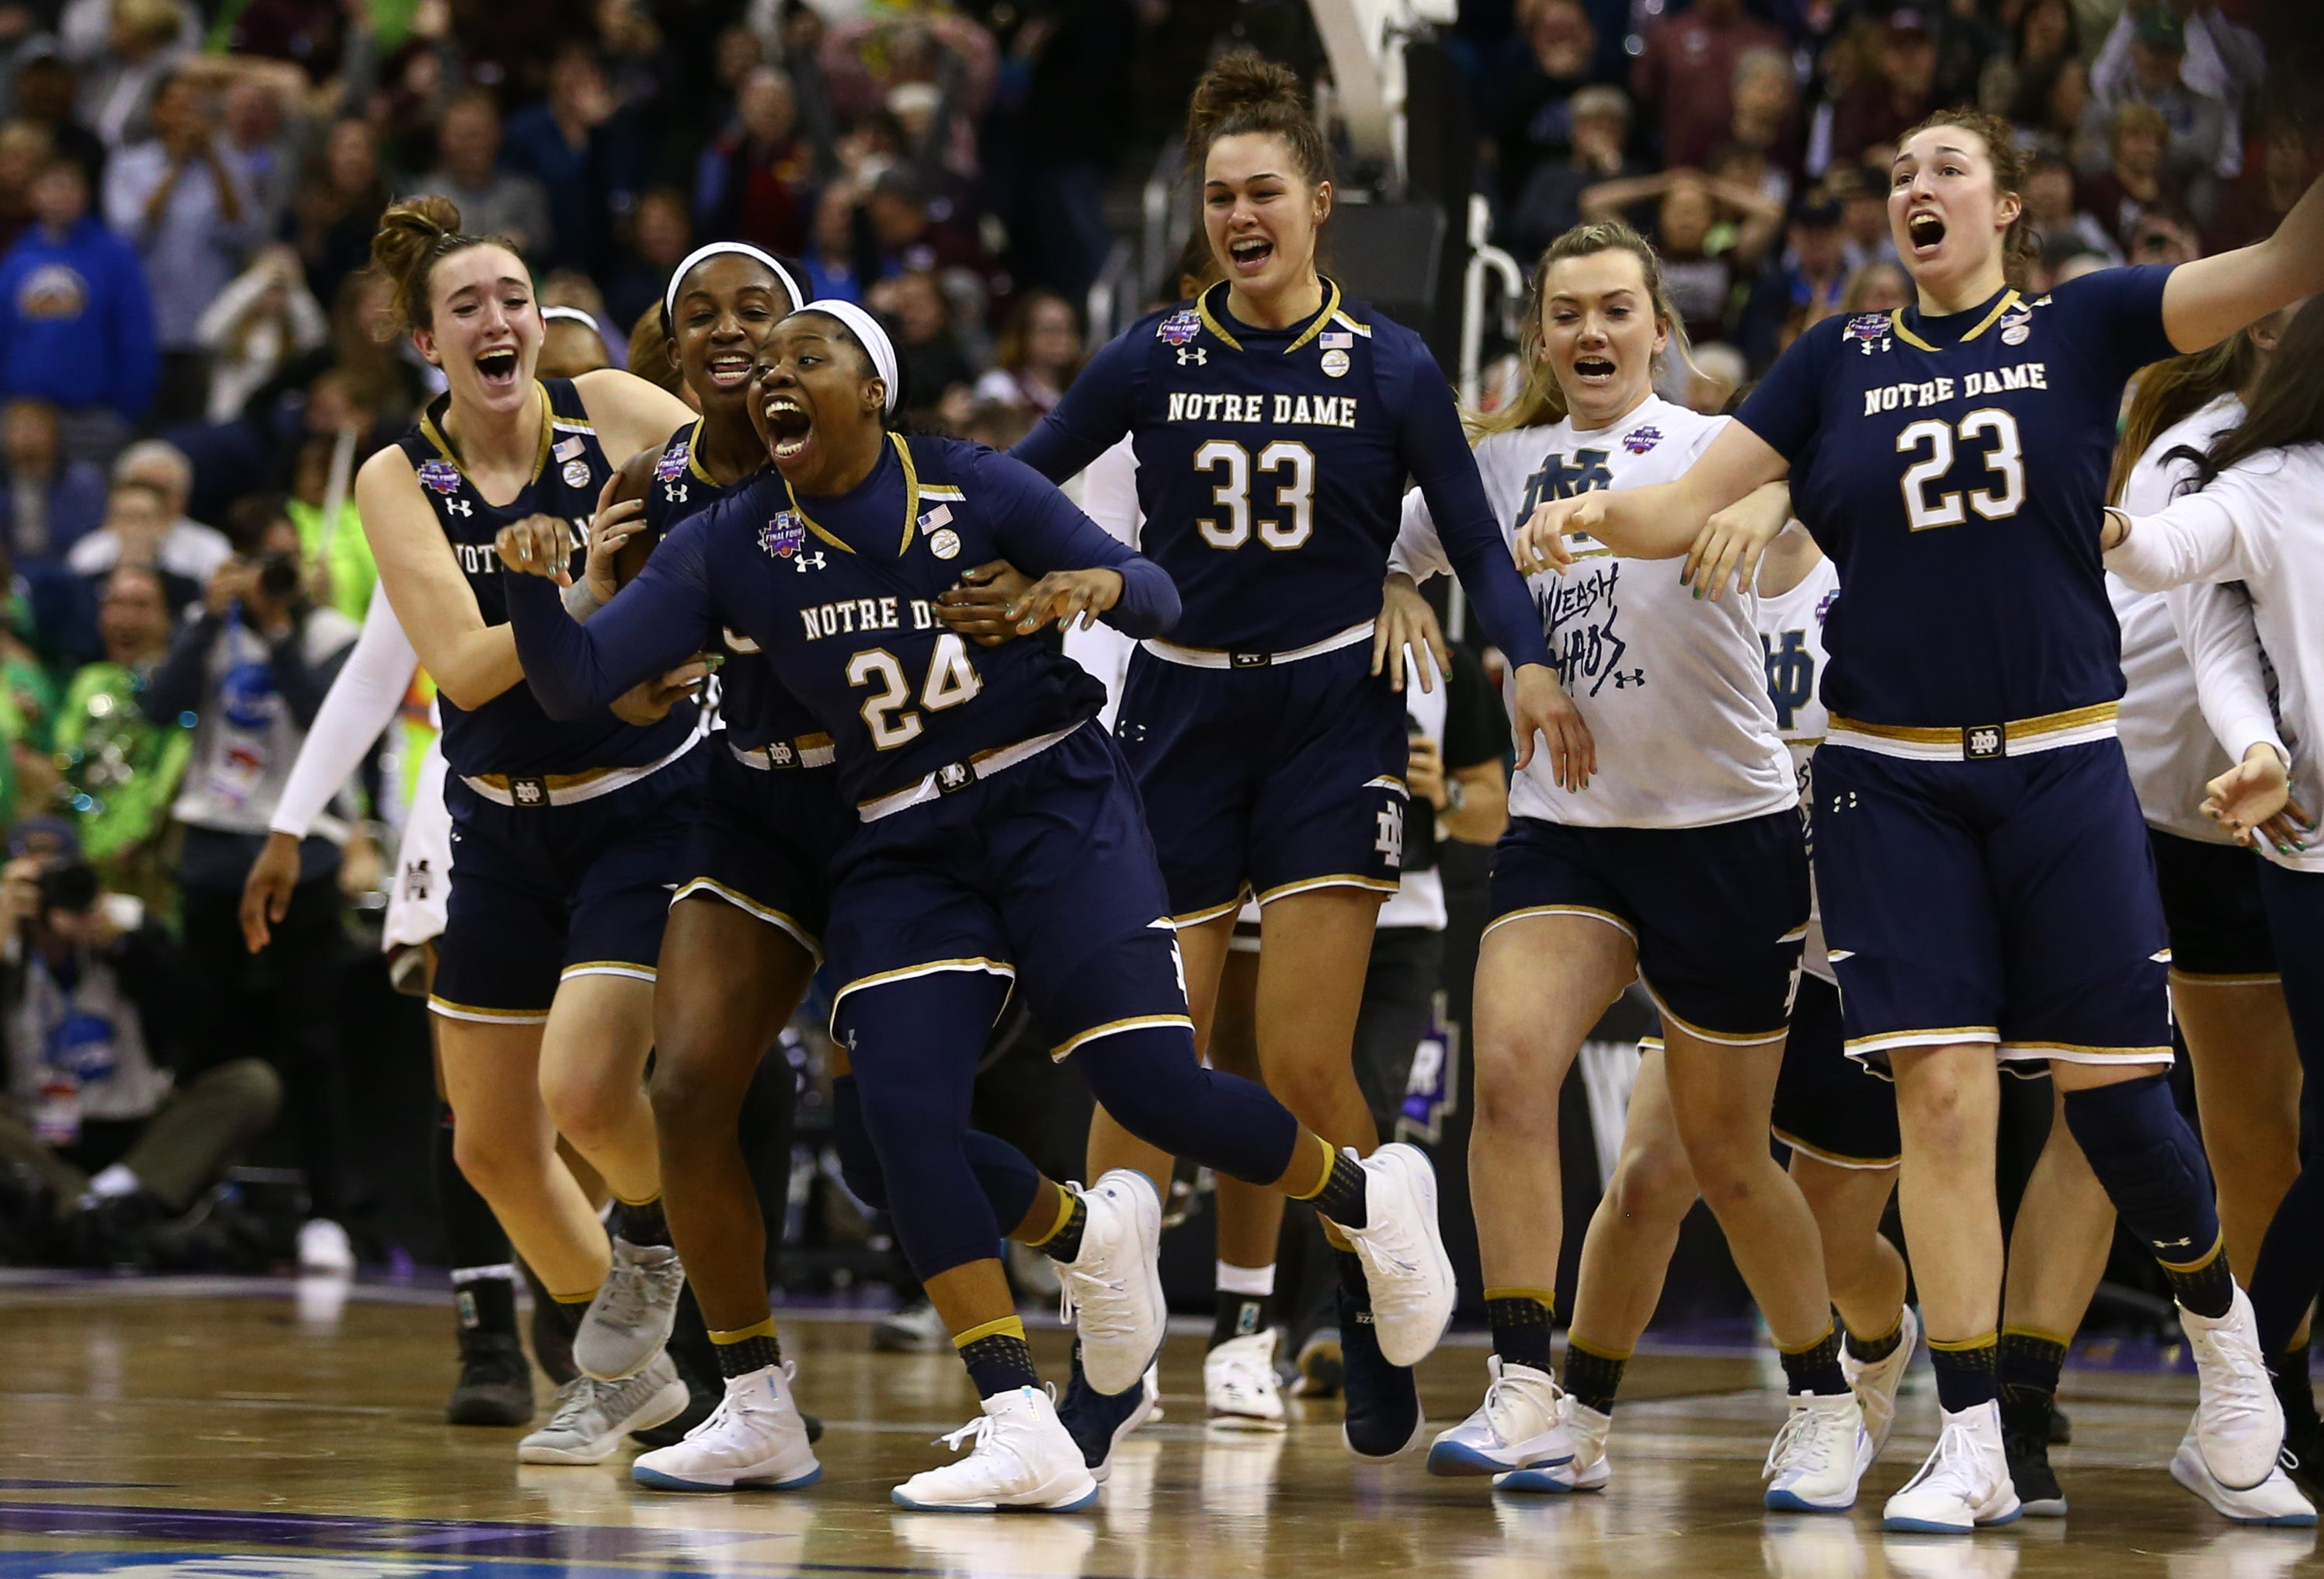 Notre Dame Fighting Irish guard Arike Ogunbowale celebrates with teammates after making the game winning basket against the Mississippi State Lady Bulldogs during the fourth quarter in the championship game of the women's Final Four in the 2018 NCAA